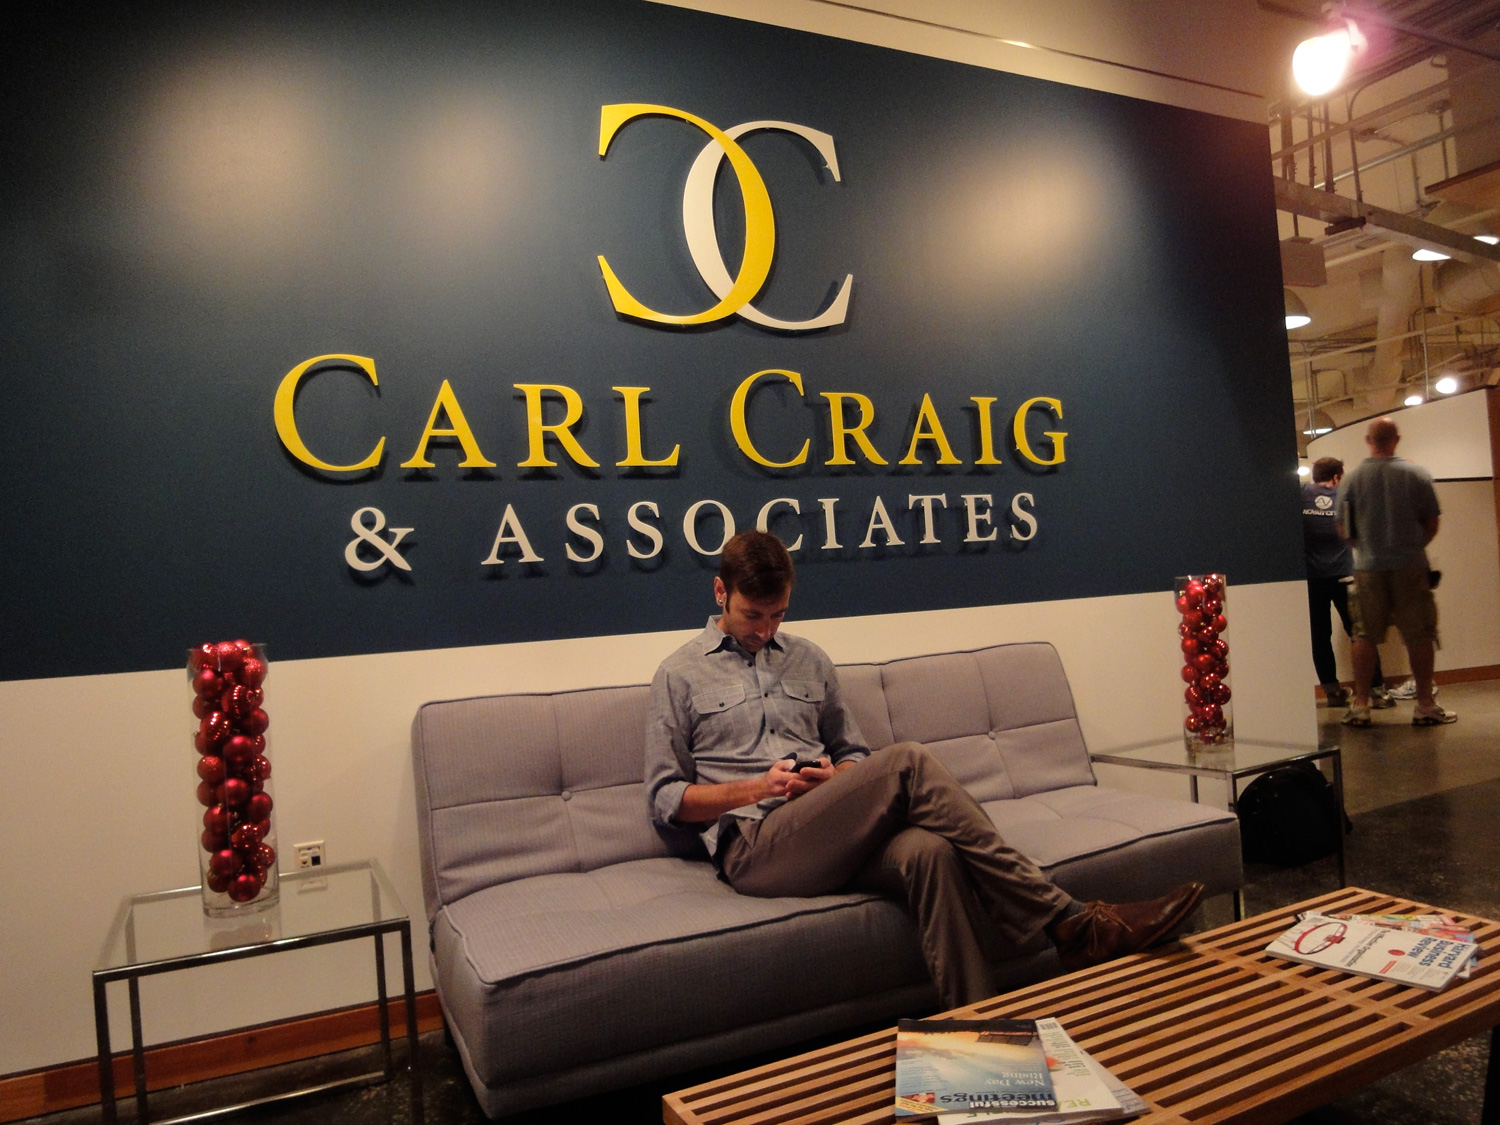 Entry and signage to Carl Craig and associates, a high end Hollywood PR firm.